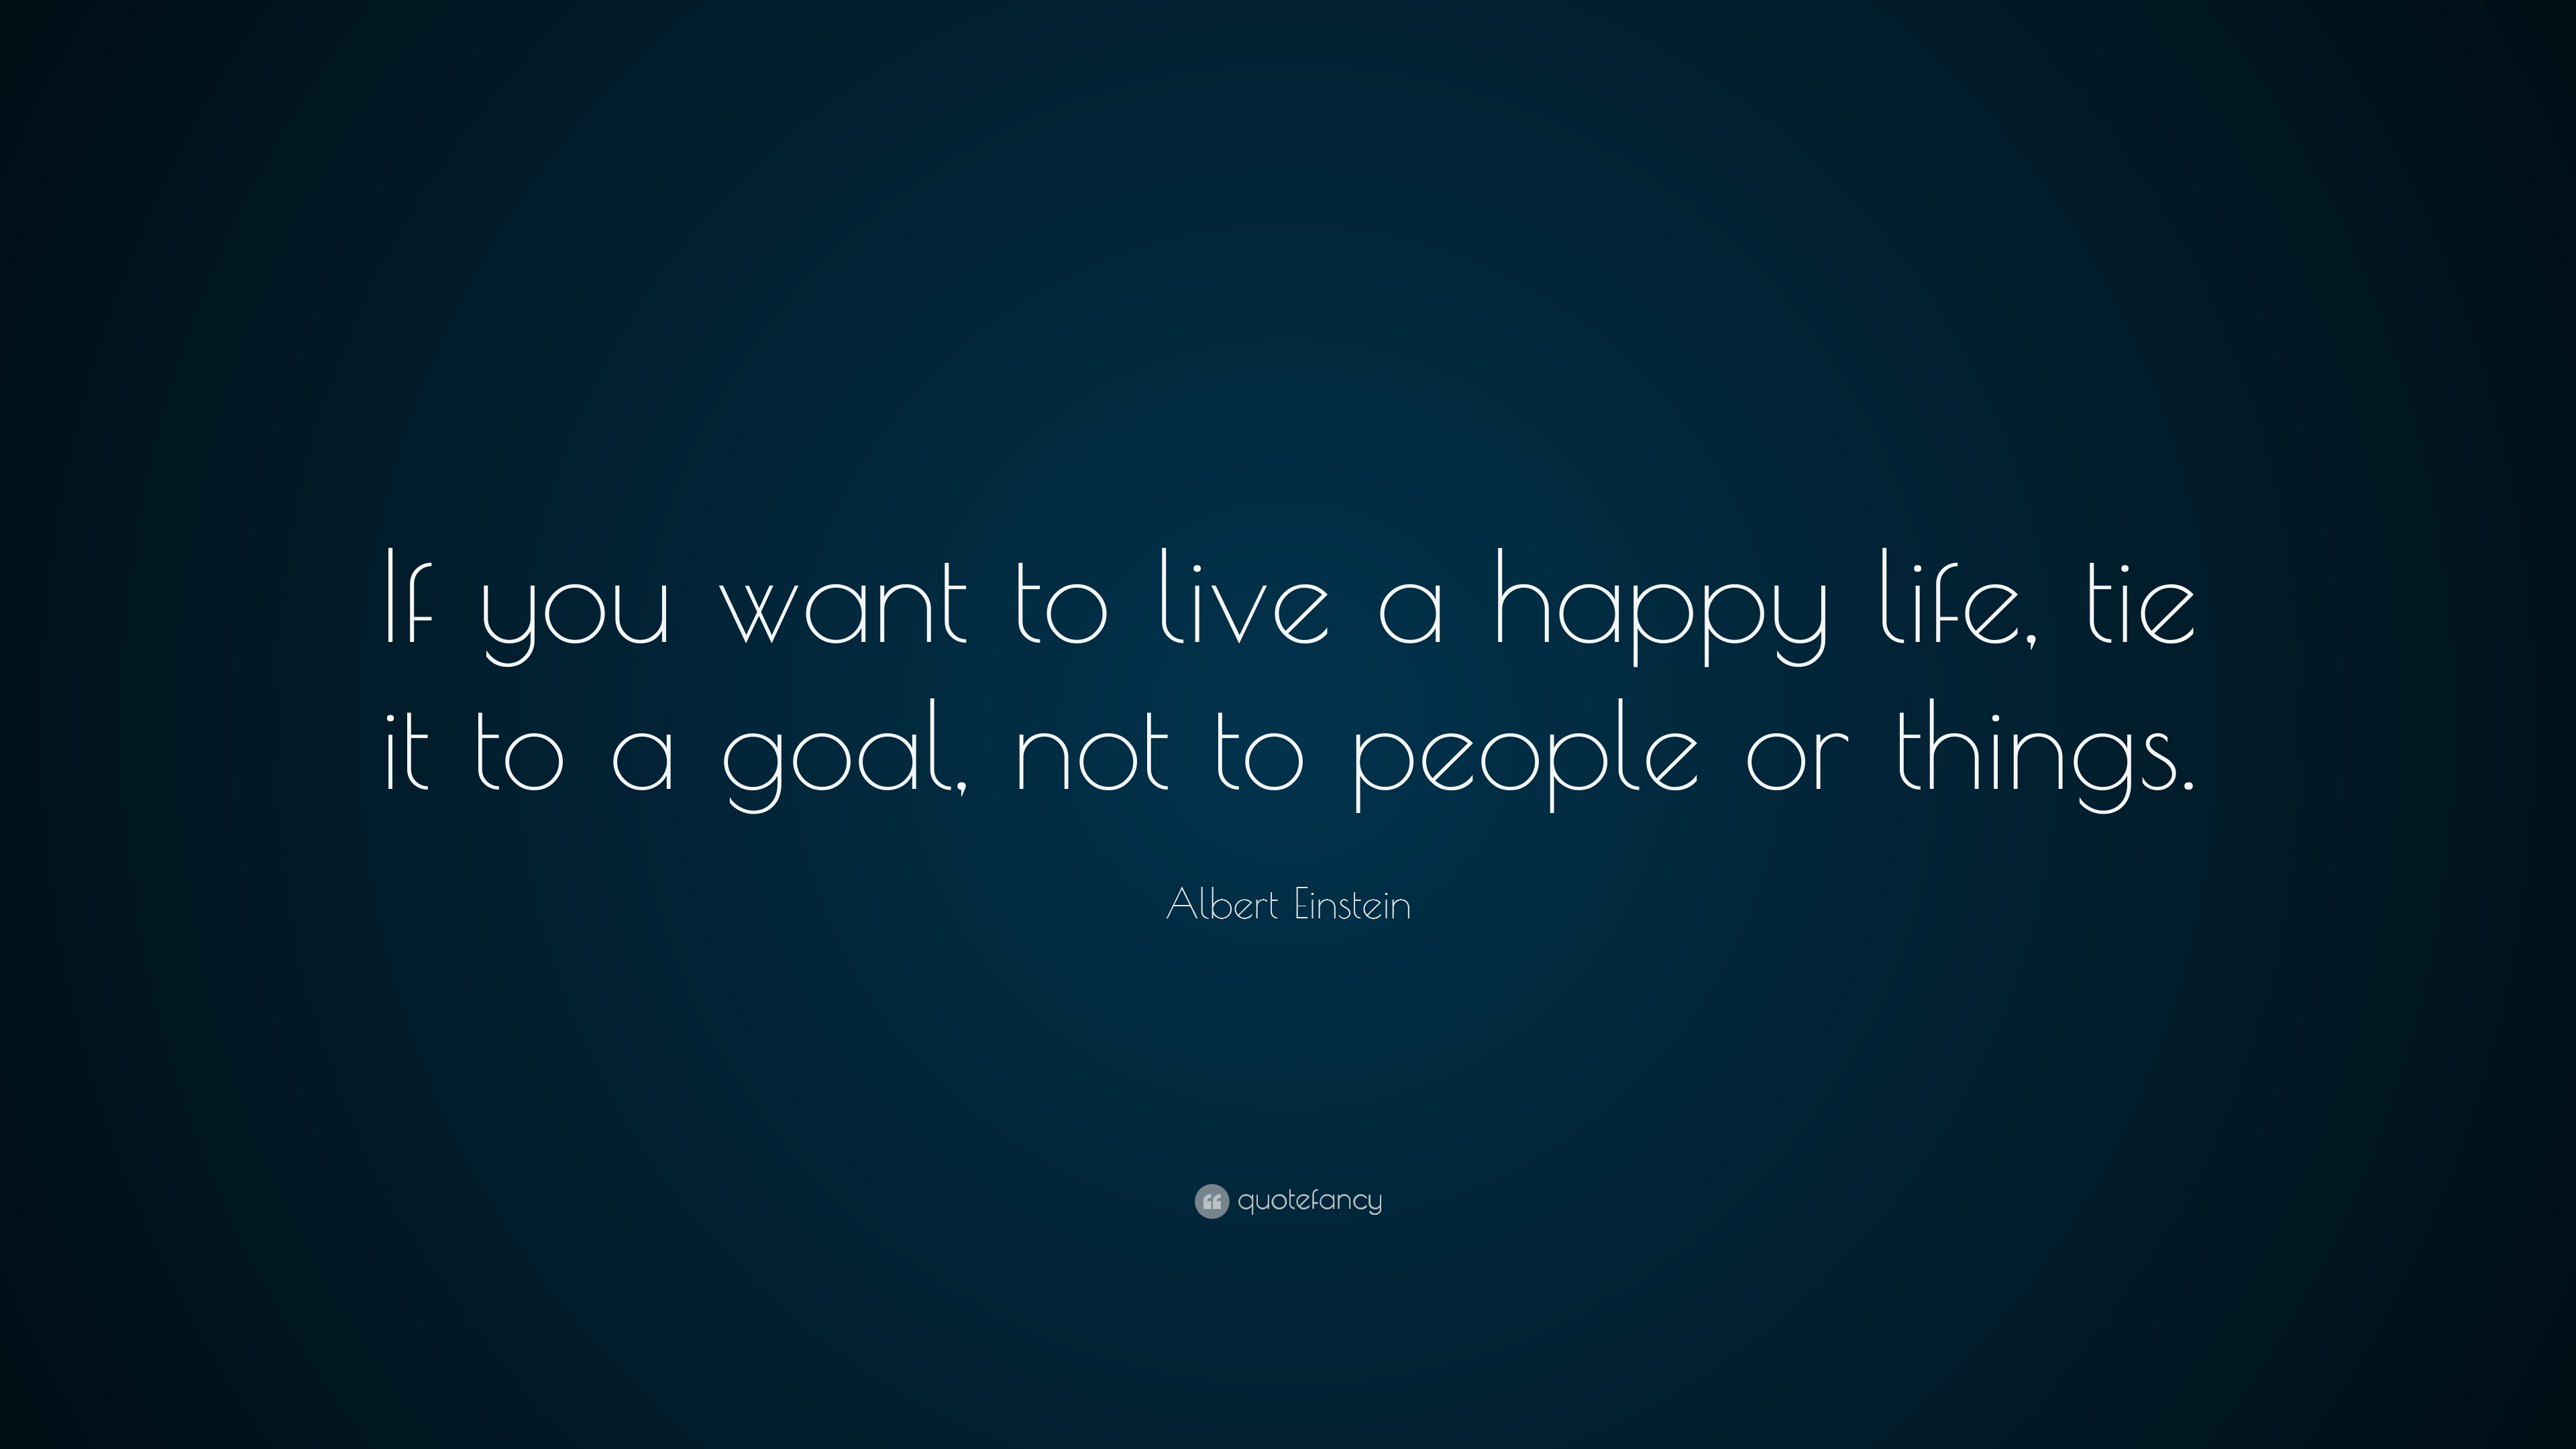 Albert Einstein Quote If You Want to Live a Happy Life